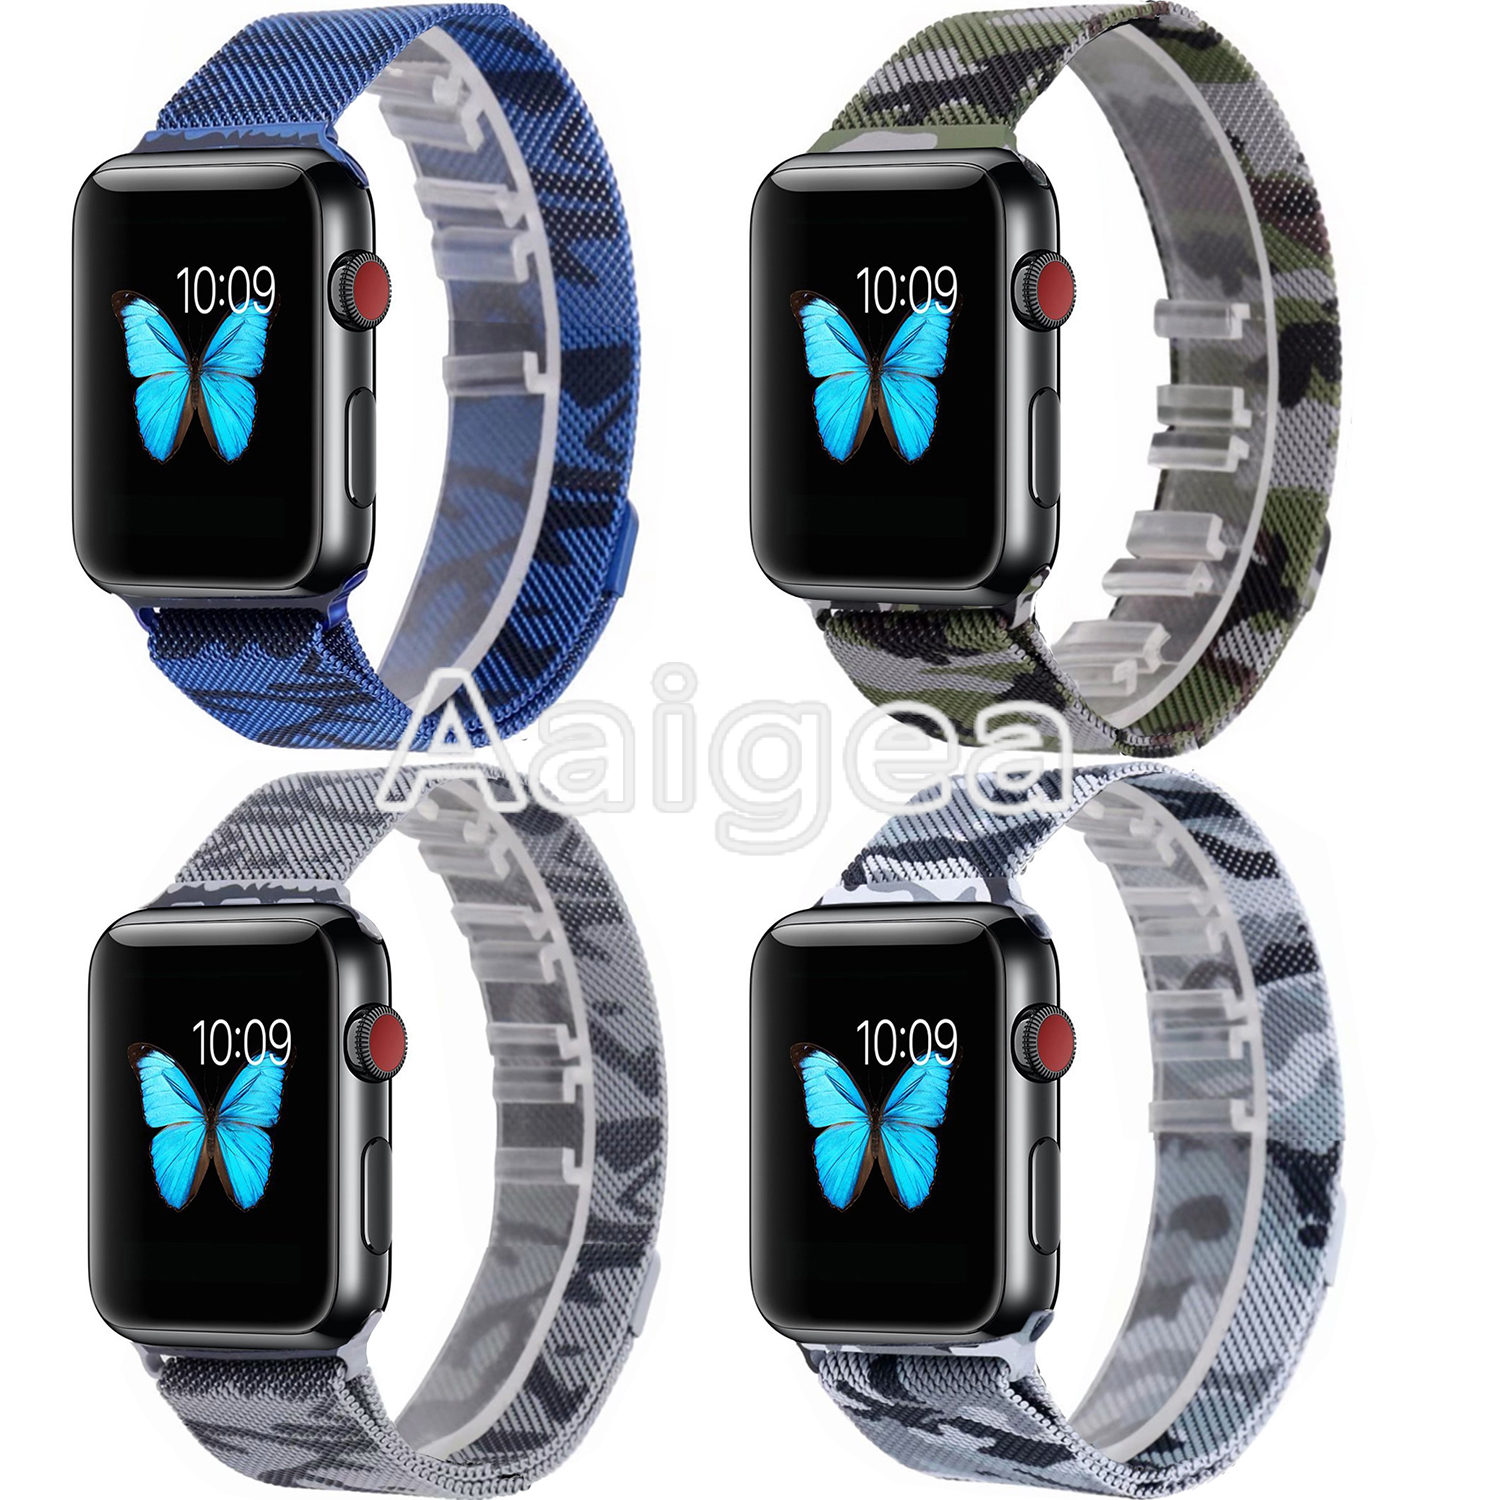 Camo Milanese Stainless Steel Band Strap for Apple Watch Series1 2 3 42mm Colorful Replacement Metal Wrist band for apple watch стоимость